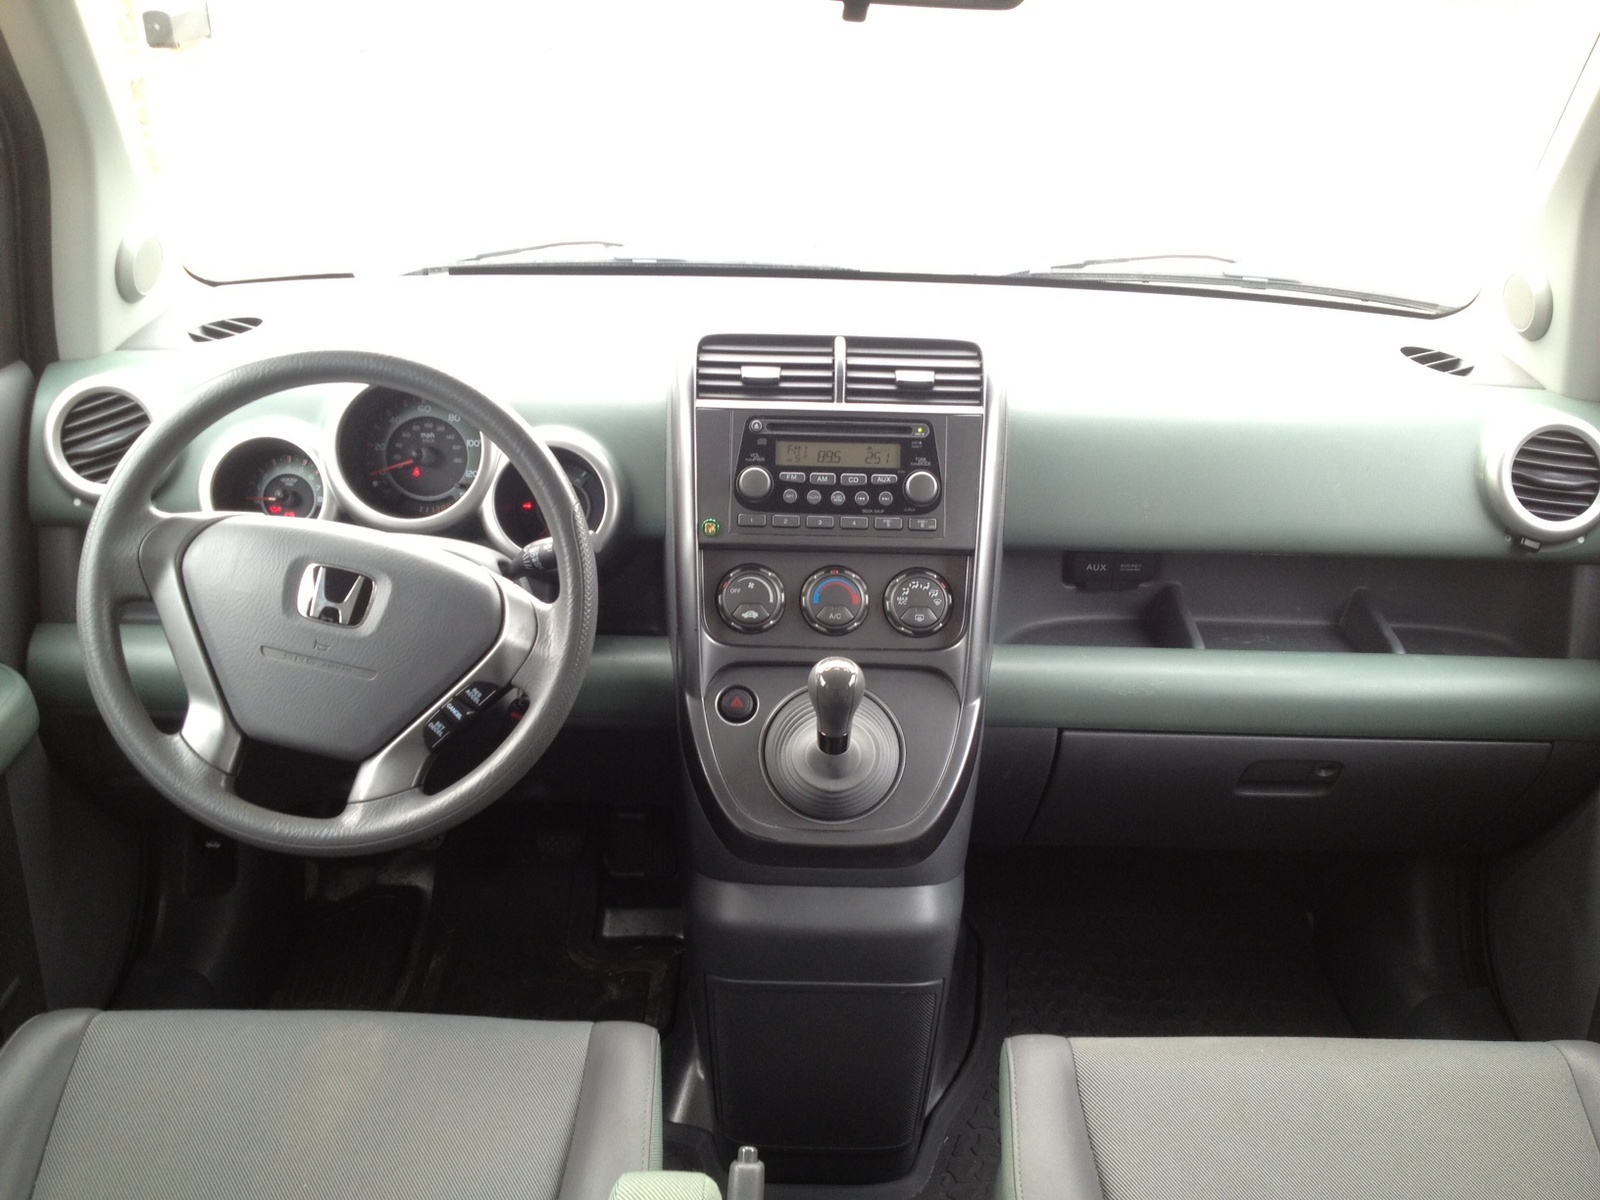 2004 Honda Element Interior Pictures Cargurus